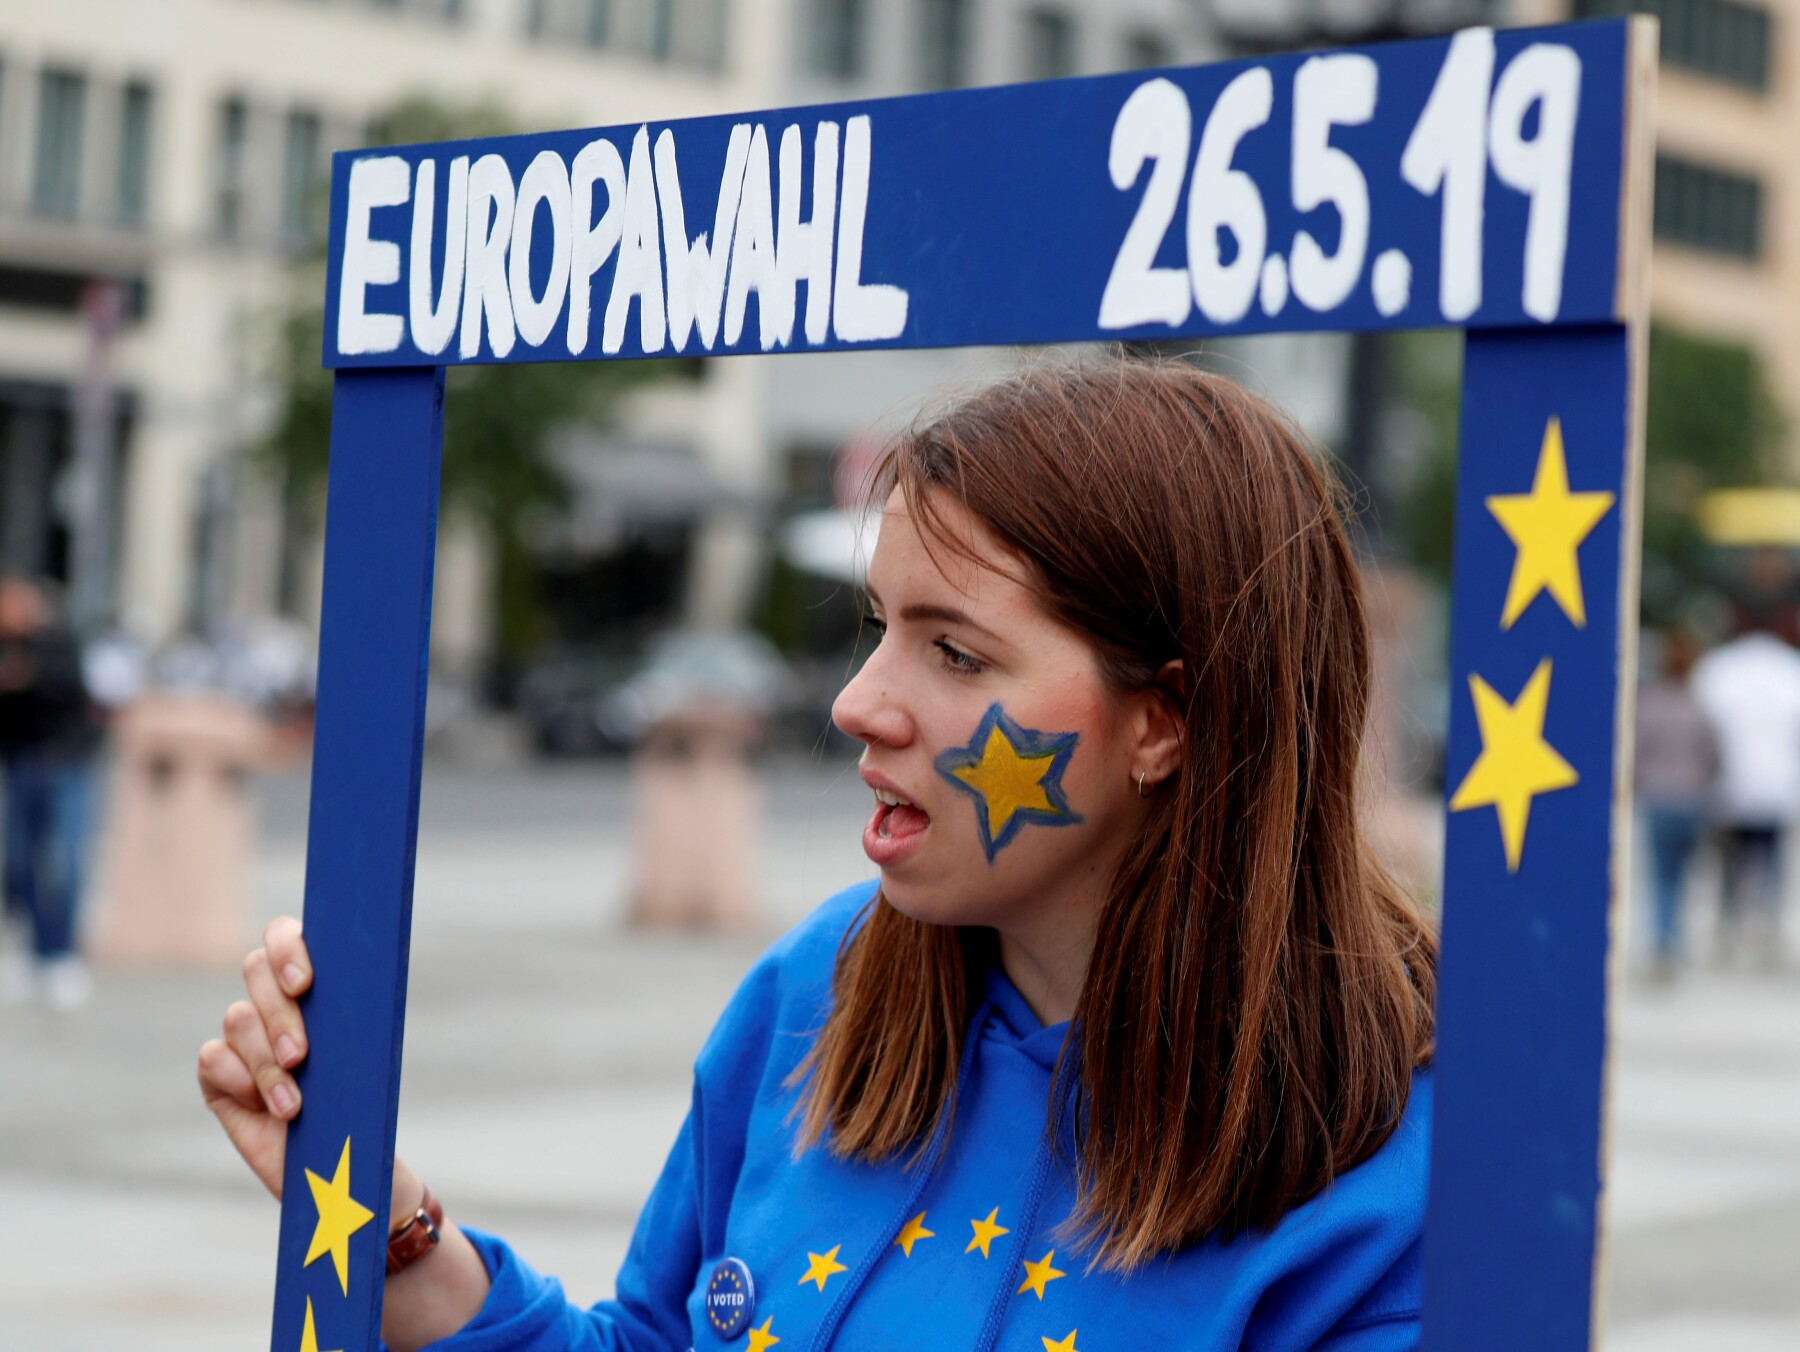 """FILE PHOTO: A woman attends an event by pro-European """"Pulse of Europe"""" movement, during the European Parliament elections at Gendarmenmarkt square in Berlin"""